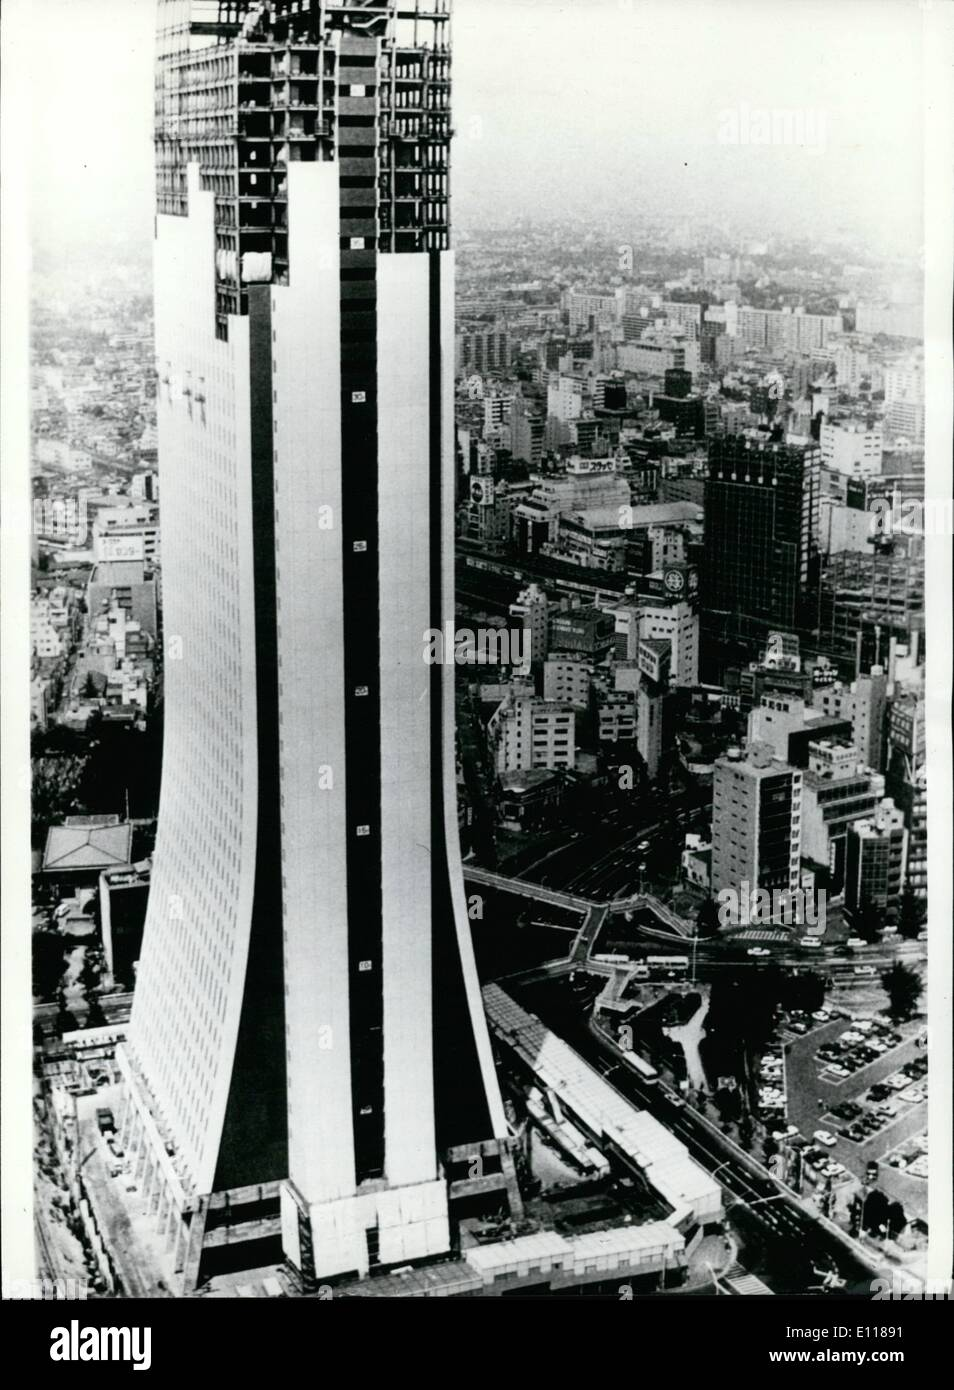 Apr. 04, 1976 - Skyscrapers which are to resist earthquakes in Tokyo; The inhabitants of the cities of Japan are living in constant fear of earthquakes which could hit the populated areas like the one in Tokyo in 1923 which took a toll of 140,000 lives. Since Geologist claim that due to increasing underground pressures, some years ago, the construction of skyscrapers which are to resist an earthquake three times stronger than ever recorded in Japan, has been started. Though even earth trumours of low intensity bring this safety skyscraper to swings, it will not collapse - Stock Image